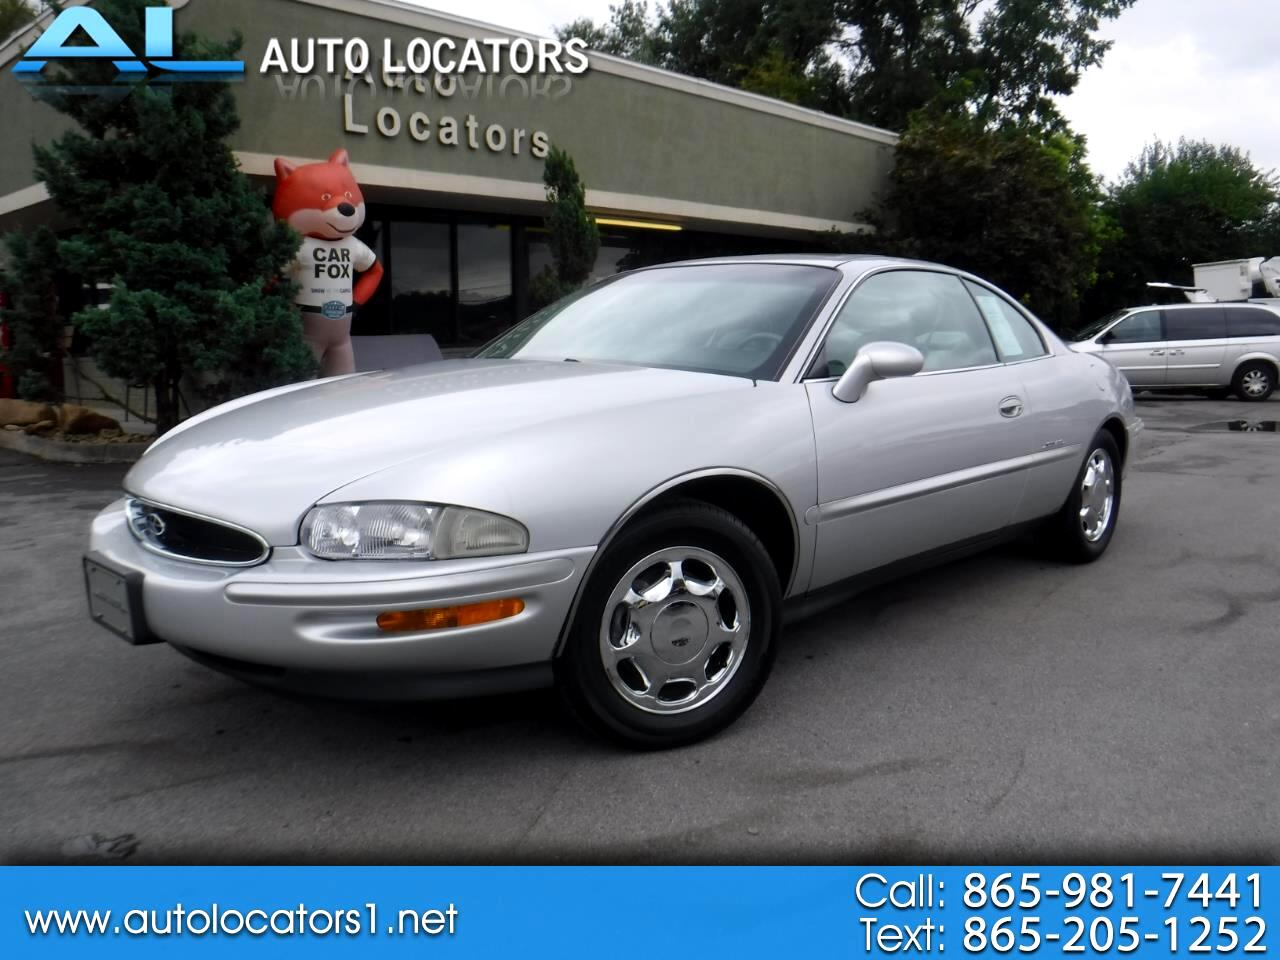 1999 Buick Riviera 2dr Cpe